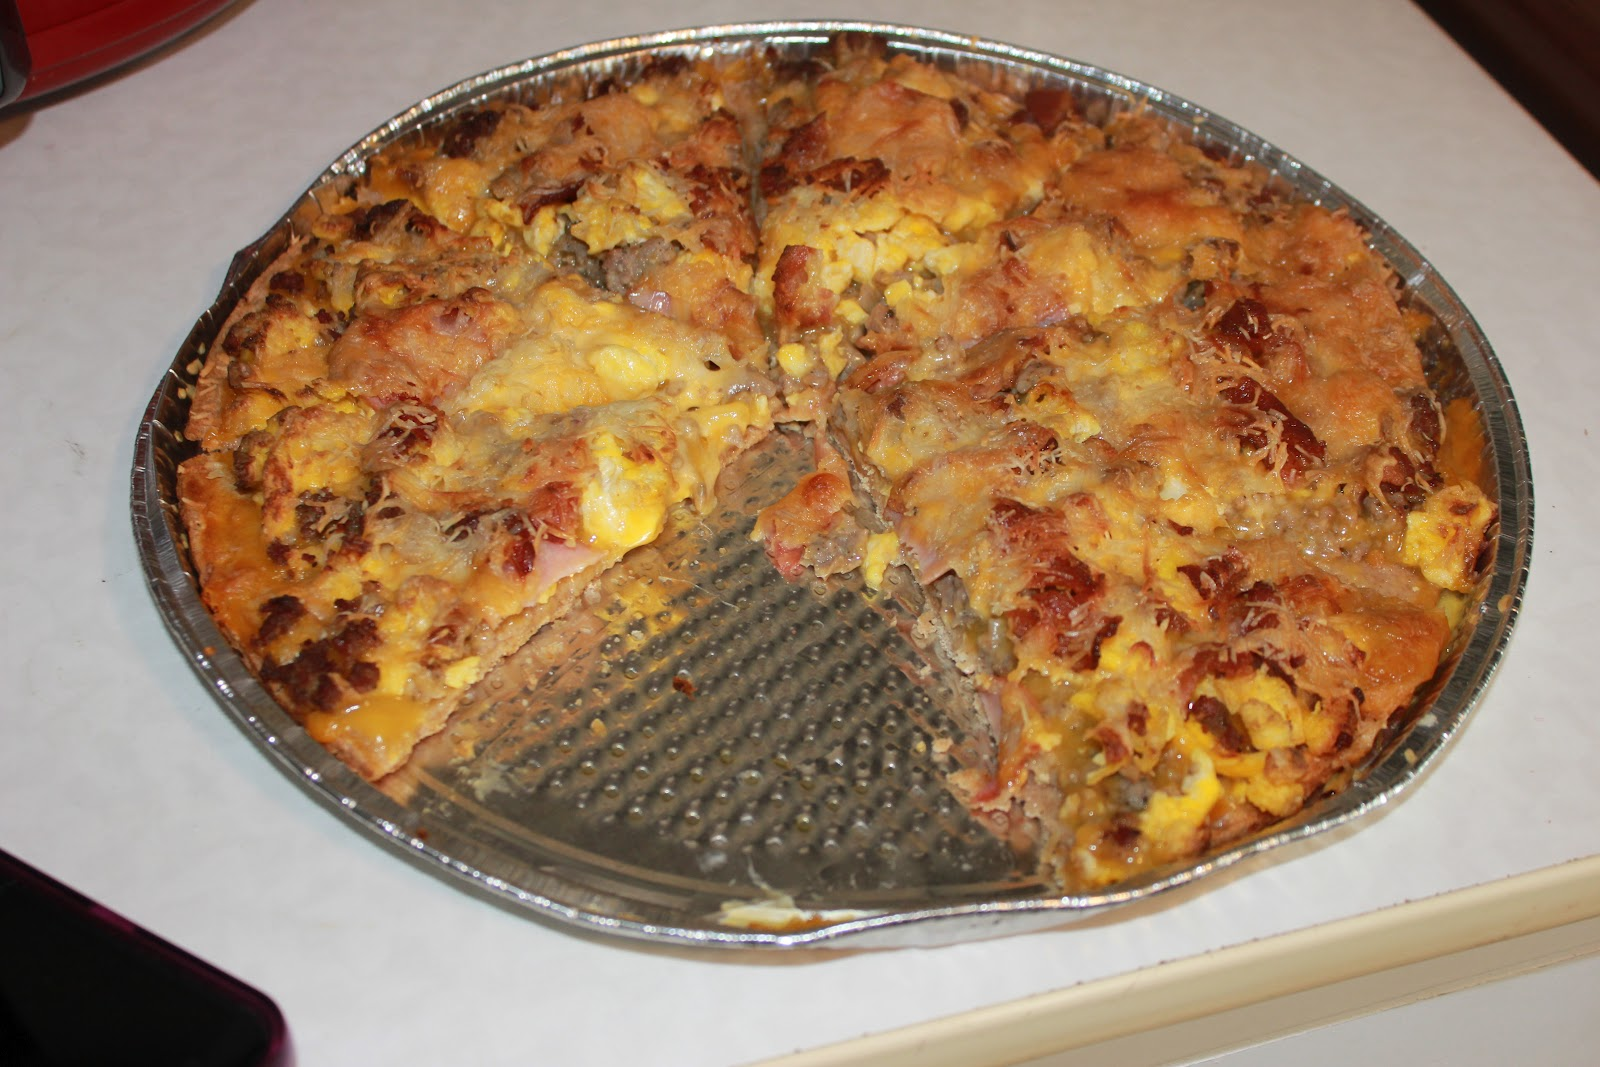 Never trust a skinny cook....: Breakfast pizza